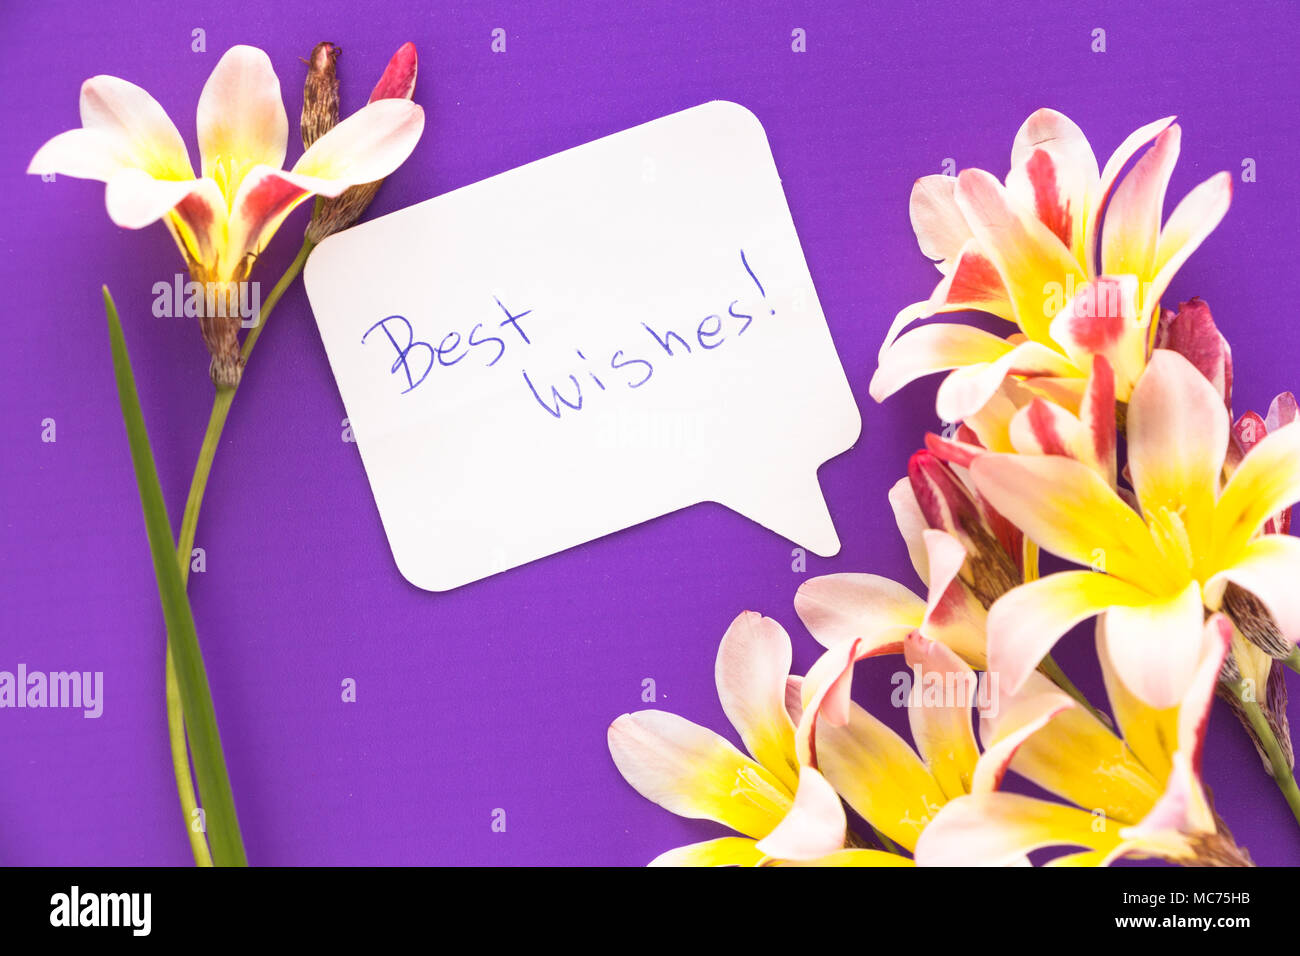 Note In Shape Of Heart With Words Best Wishes With Flowers On